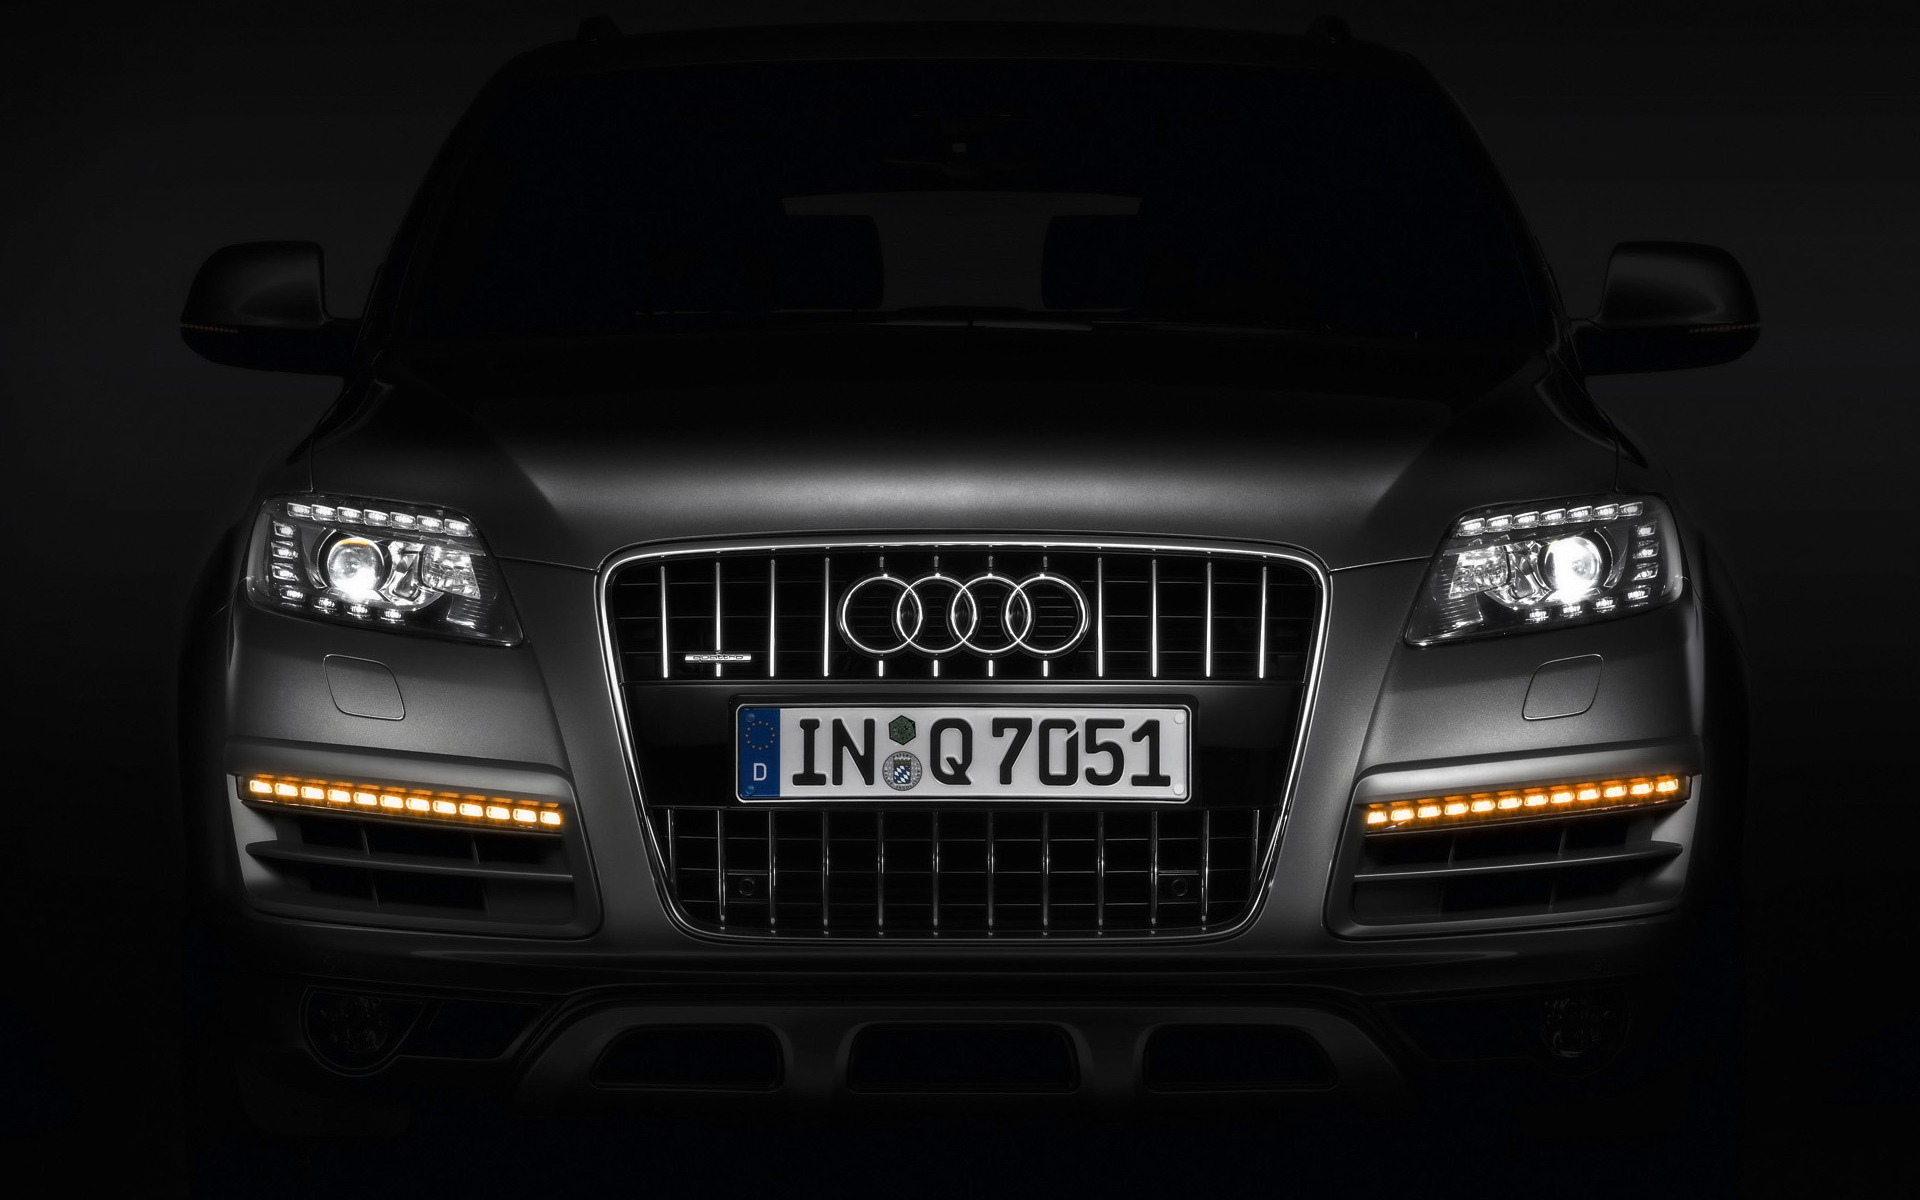 hd car wallpapers audi gallery download free OIvB free cars pics